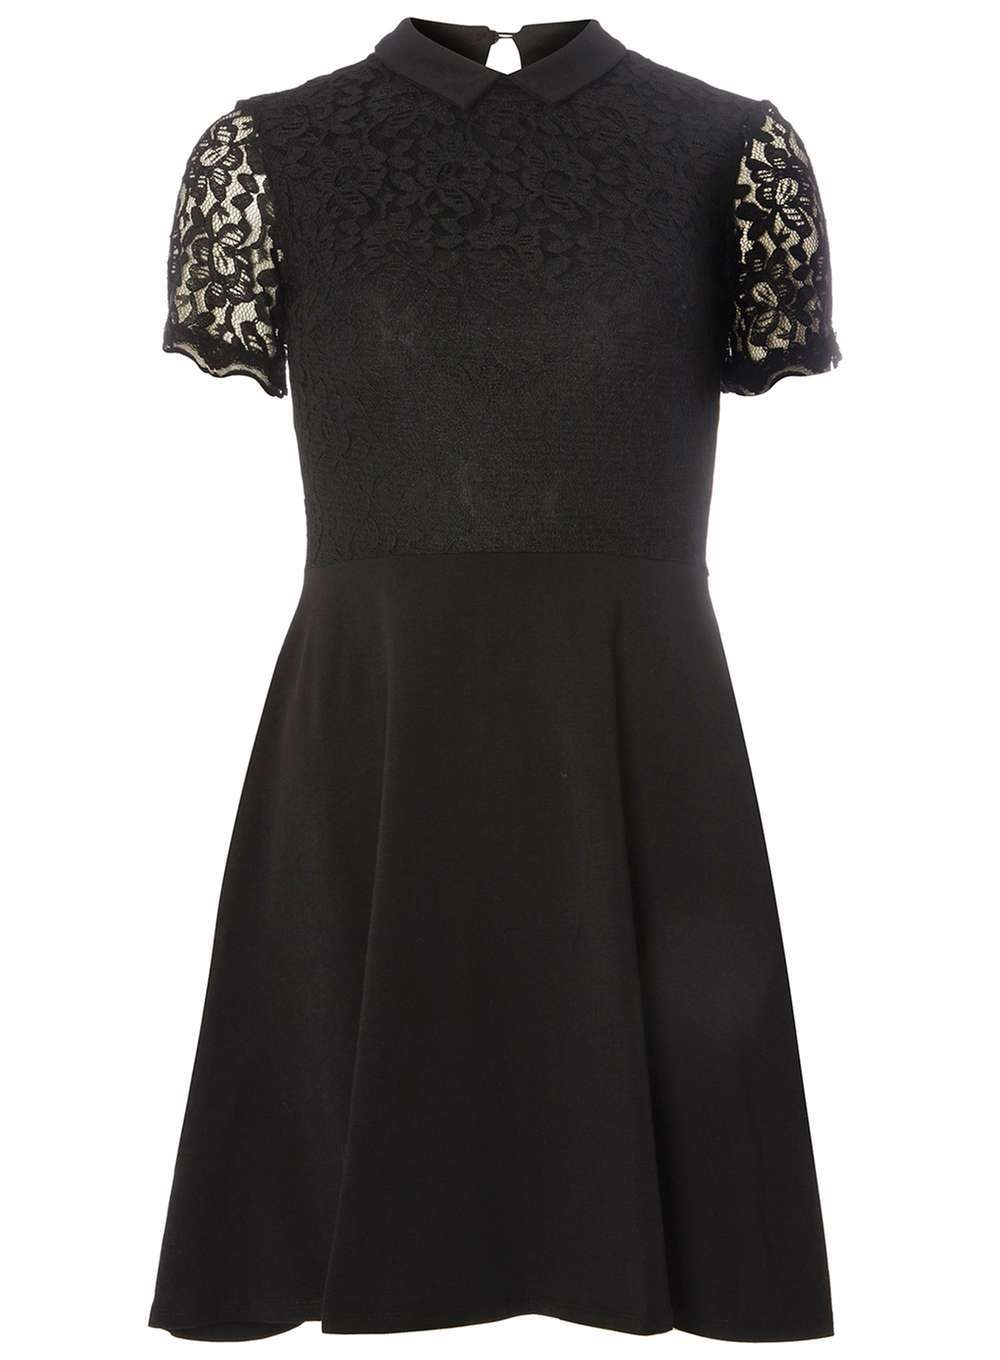 Womens Black Lace Collar Dress Black - pattern: plain; neckline: high neck; predominant colour: black; occasions: evening; length: just above the knee; fit: fitted at waist & bust; style: fit & flare; fibres: cotton - stretch; back detail: keyhole/peephole detail at back; sleeve length: short sleeve; sleeve style: standard; pattern type: fabric; texture group: jersey - stretchy/drapey; embellishment: lace; season: a/w 2016; wardrobe: event; embellishment location: bust, sleeve/cuff